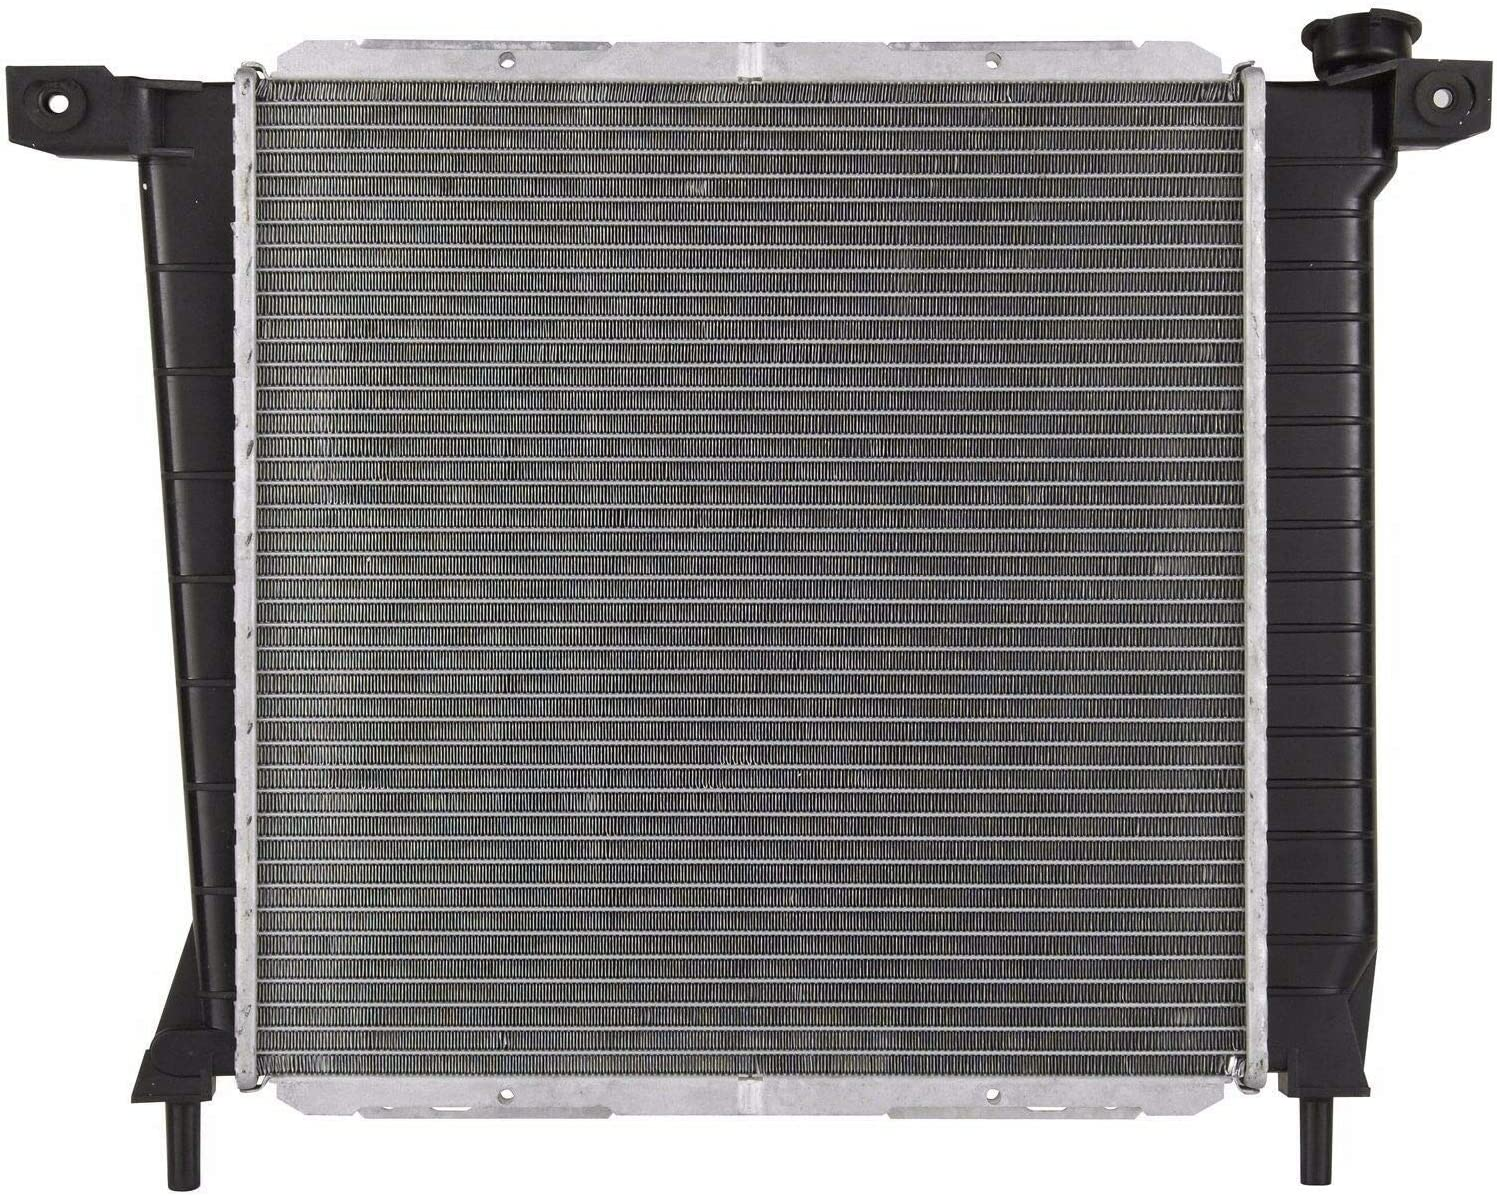 Klimoto Brand New Radiator fits Ford Ranger Bronco II Explorer Mazda Navajo 2.8L 2.9L 3.0L 4.0L V6 Manual Transmission only Will not work for Automatic